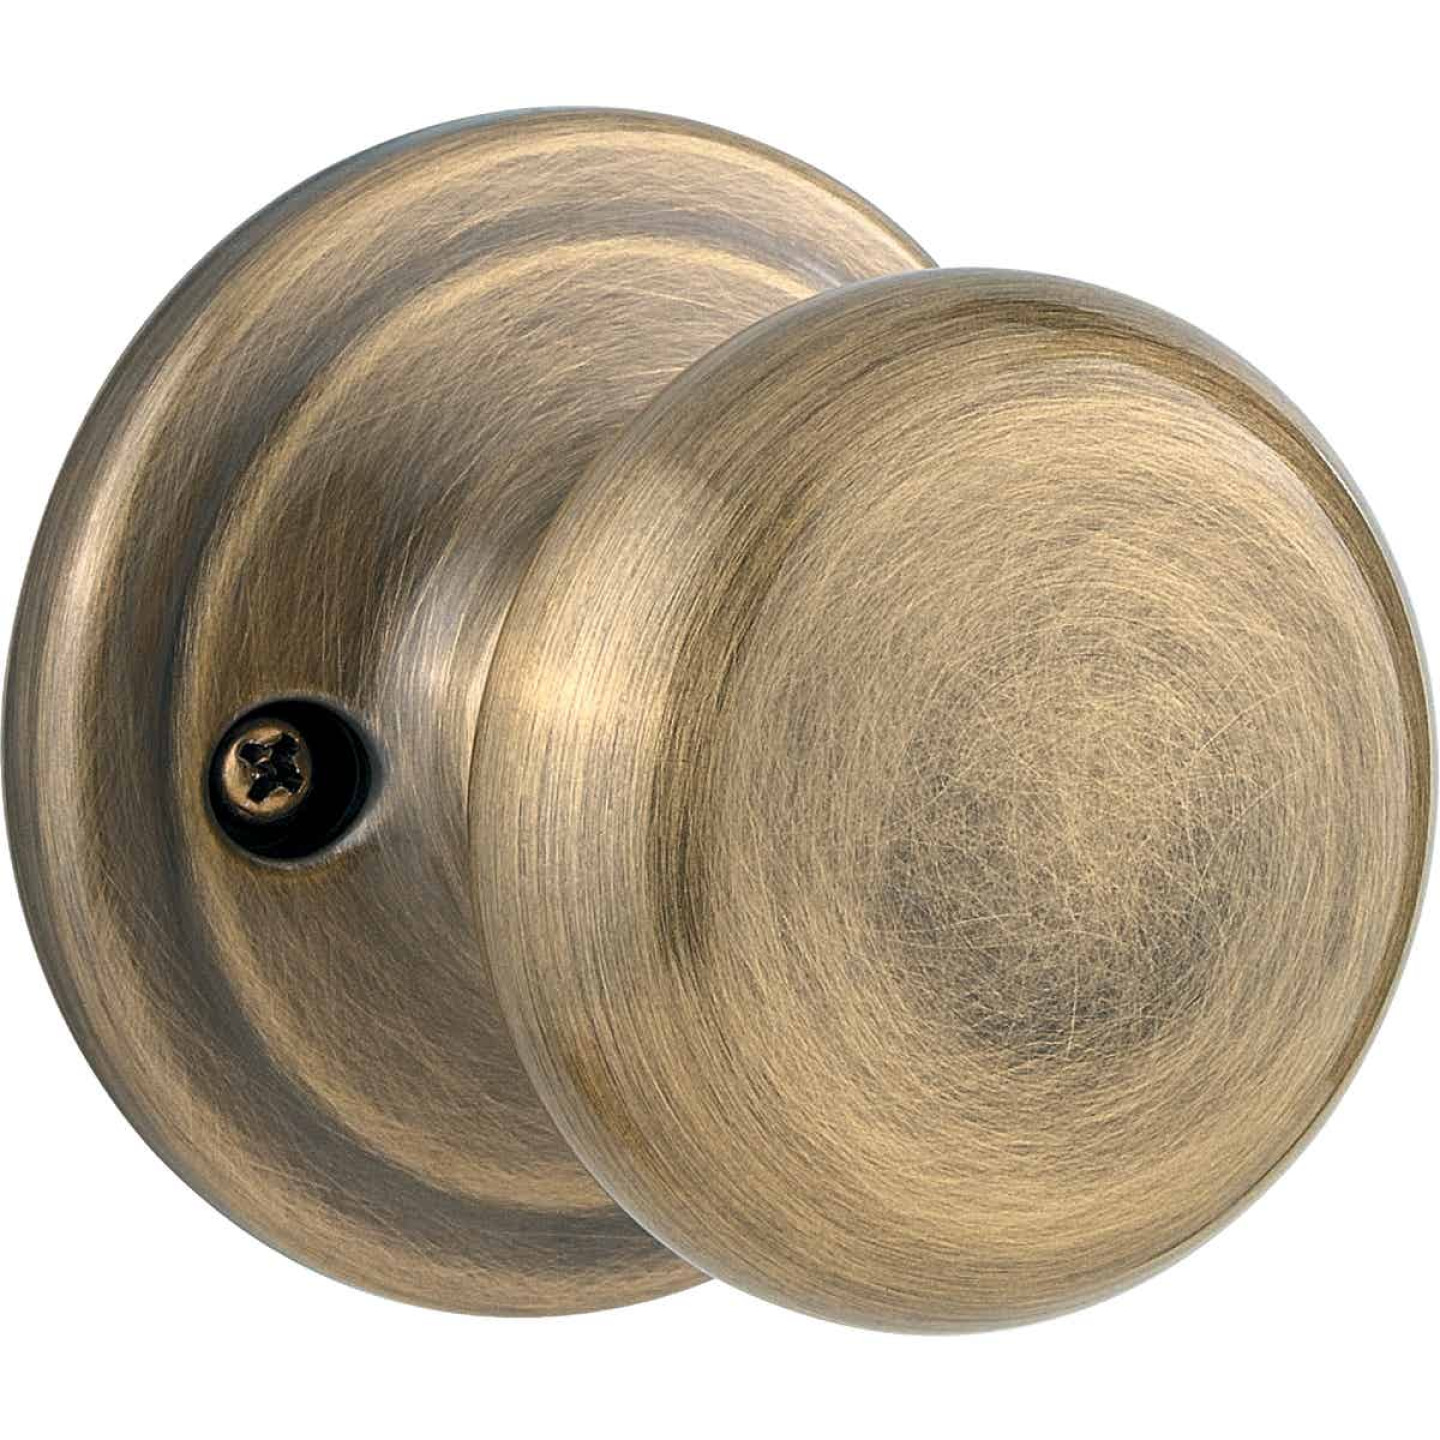 Kwikset Signature Series Antique Brass Juno Dummy Door Knob Image 1